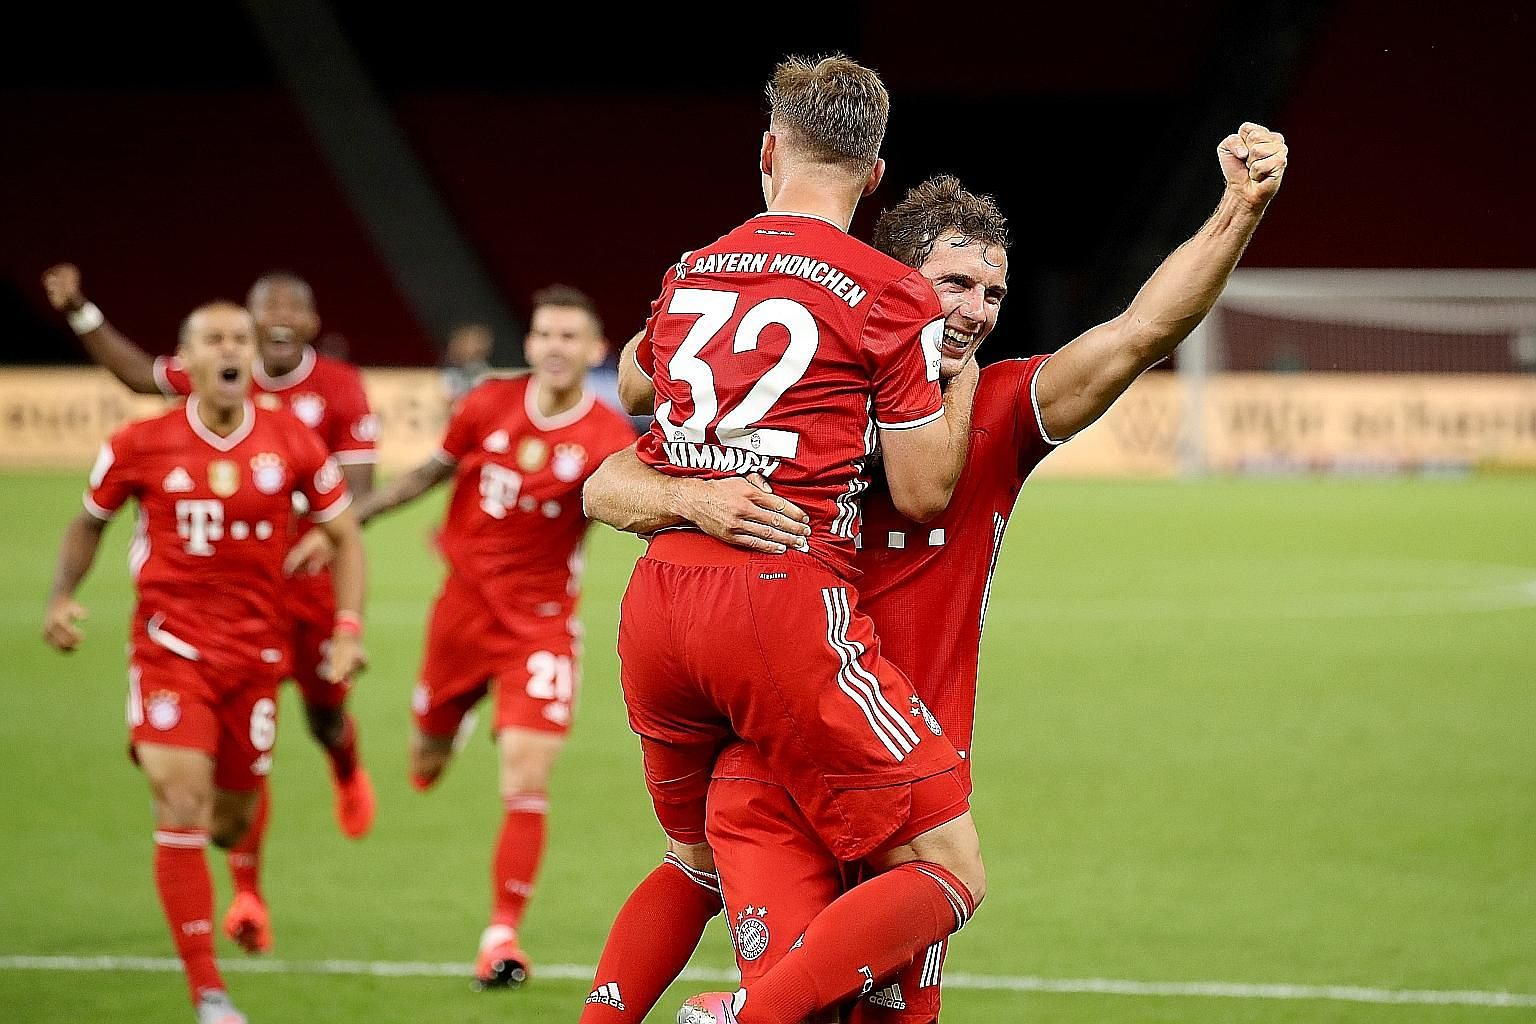 Bayern Munich's Leon Goretzka (right) and Joshua Kimmich celebrating their fourth goal against Bayer Leverkusen at Berlin's Olympic Stadium on July 4. The newly-crowned Bundesliga champions' 4-2 win in the German Cup final secured their second trophy